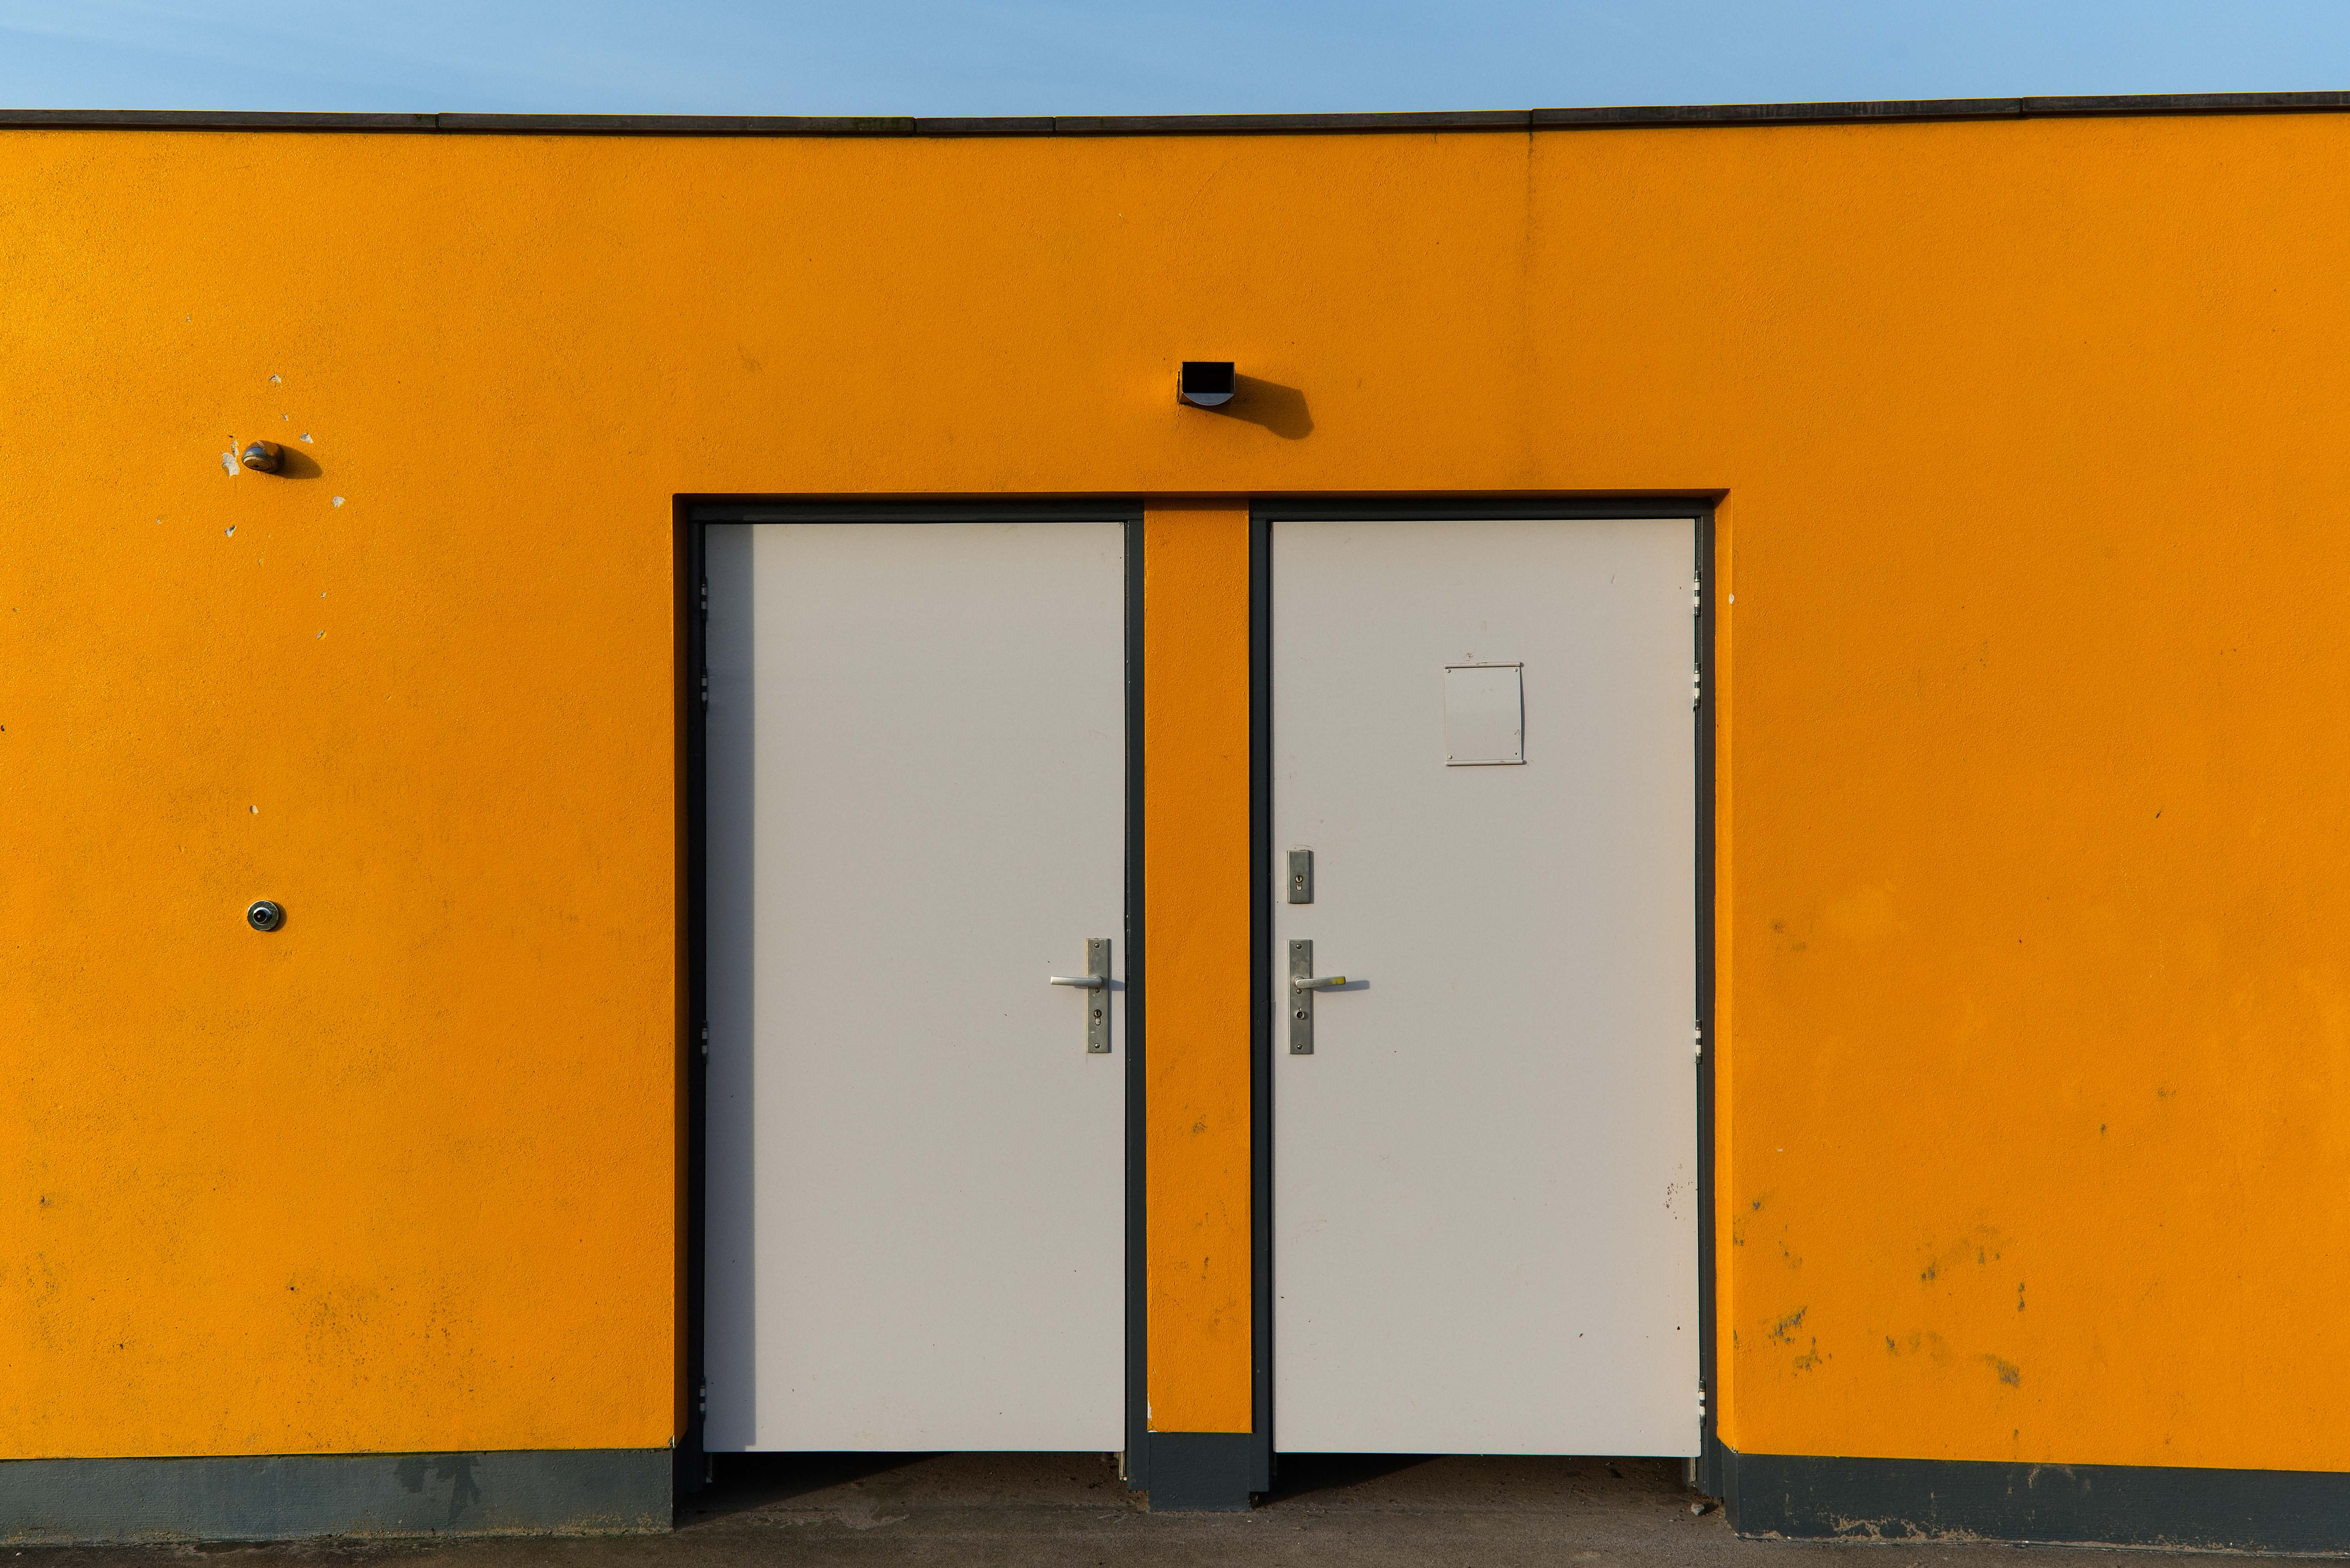 Thursday Doors - Public lavatory & Thursday Doors \u2013 Ugly yellow door | WitchWithaView | Photography